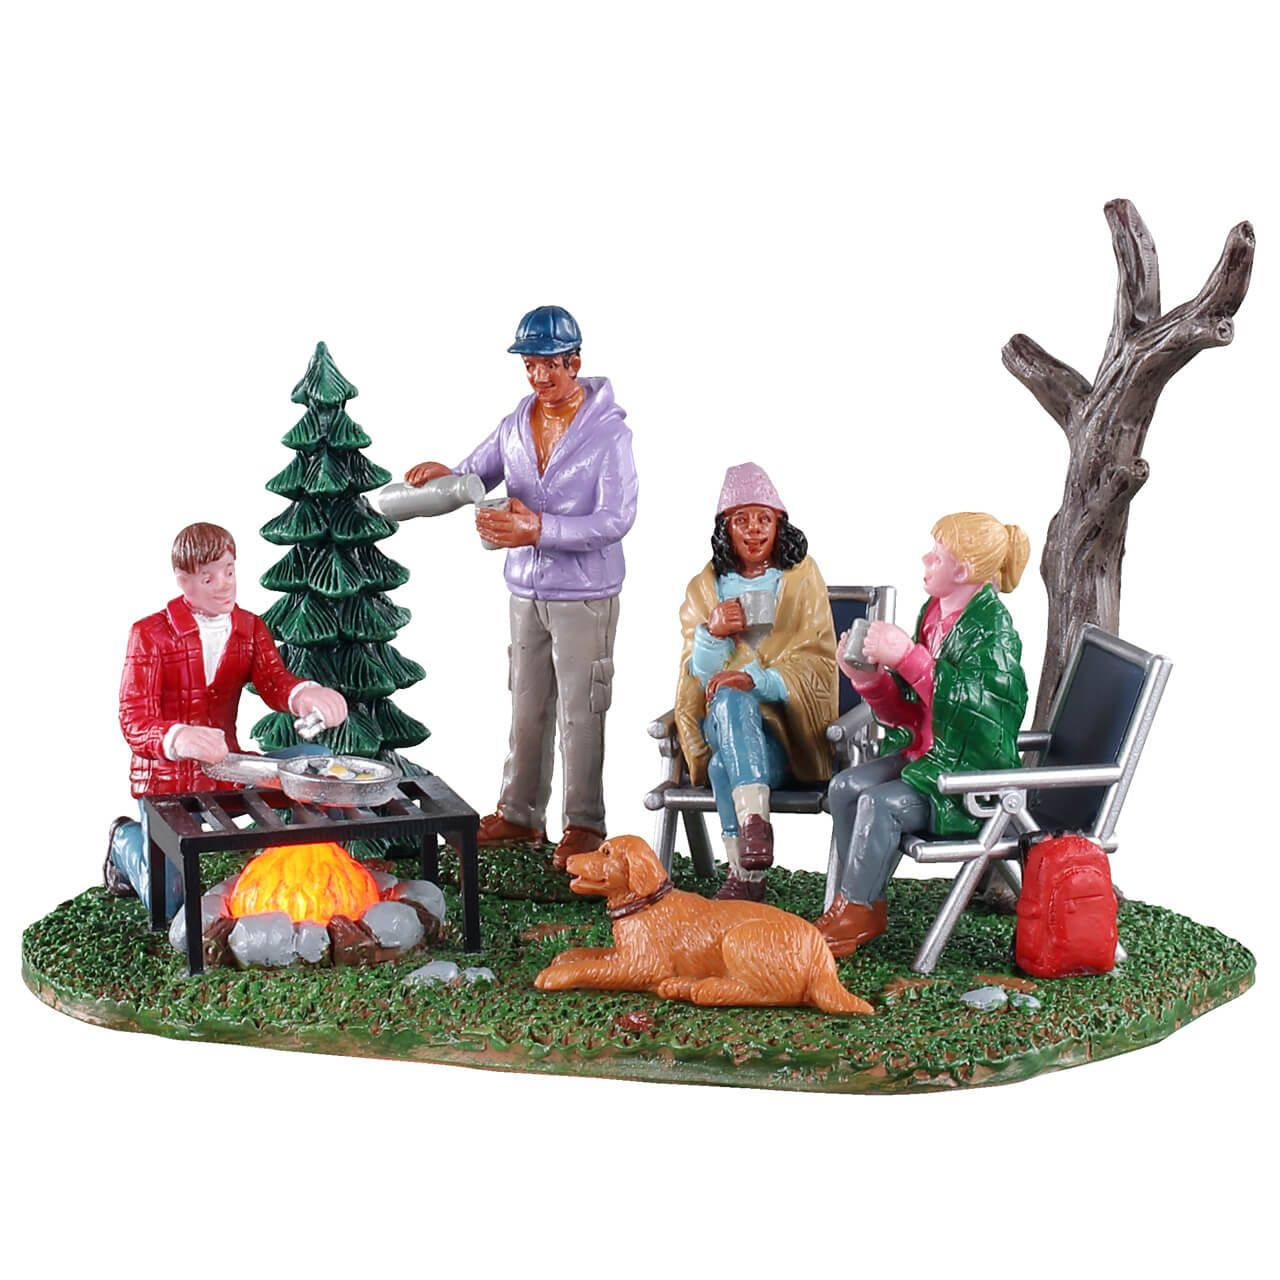 Enchanted Christmas Village 2020 Lemax Camping Couples in 2020 | Christmas village accessories